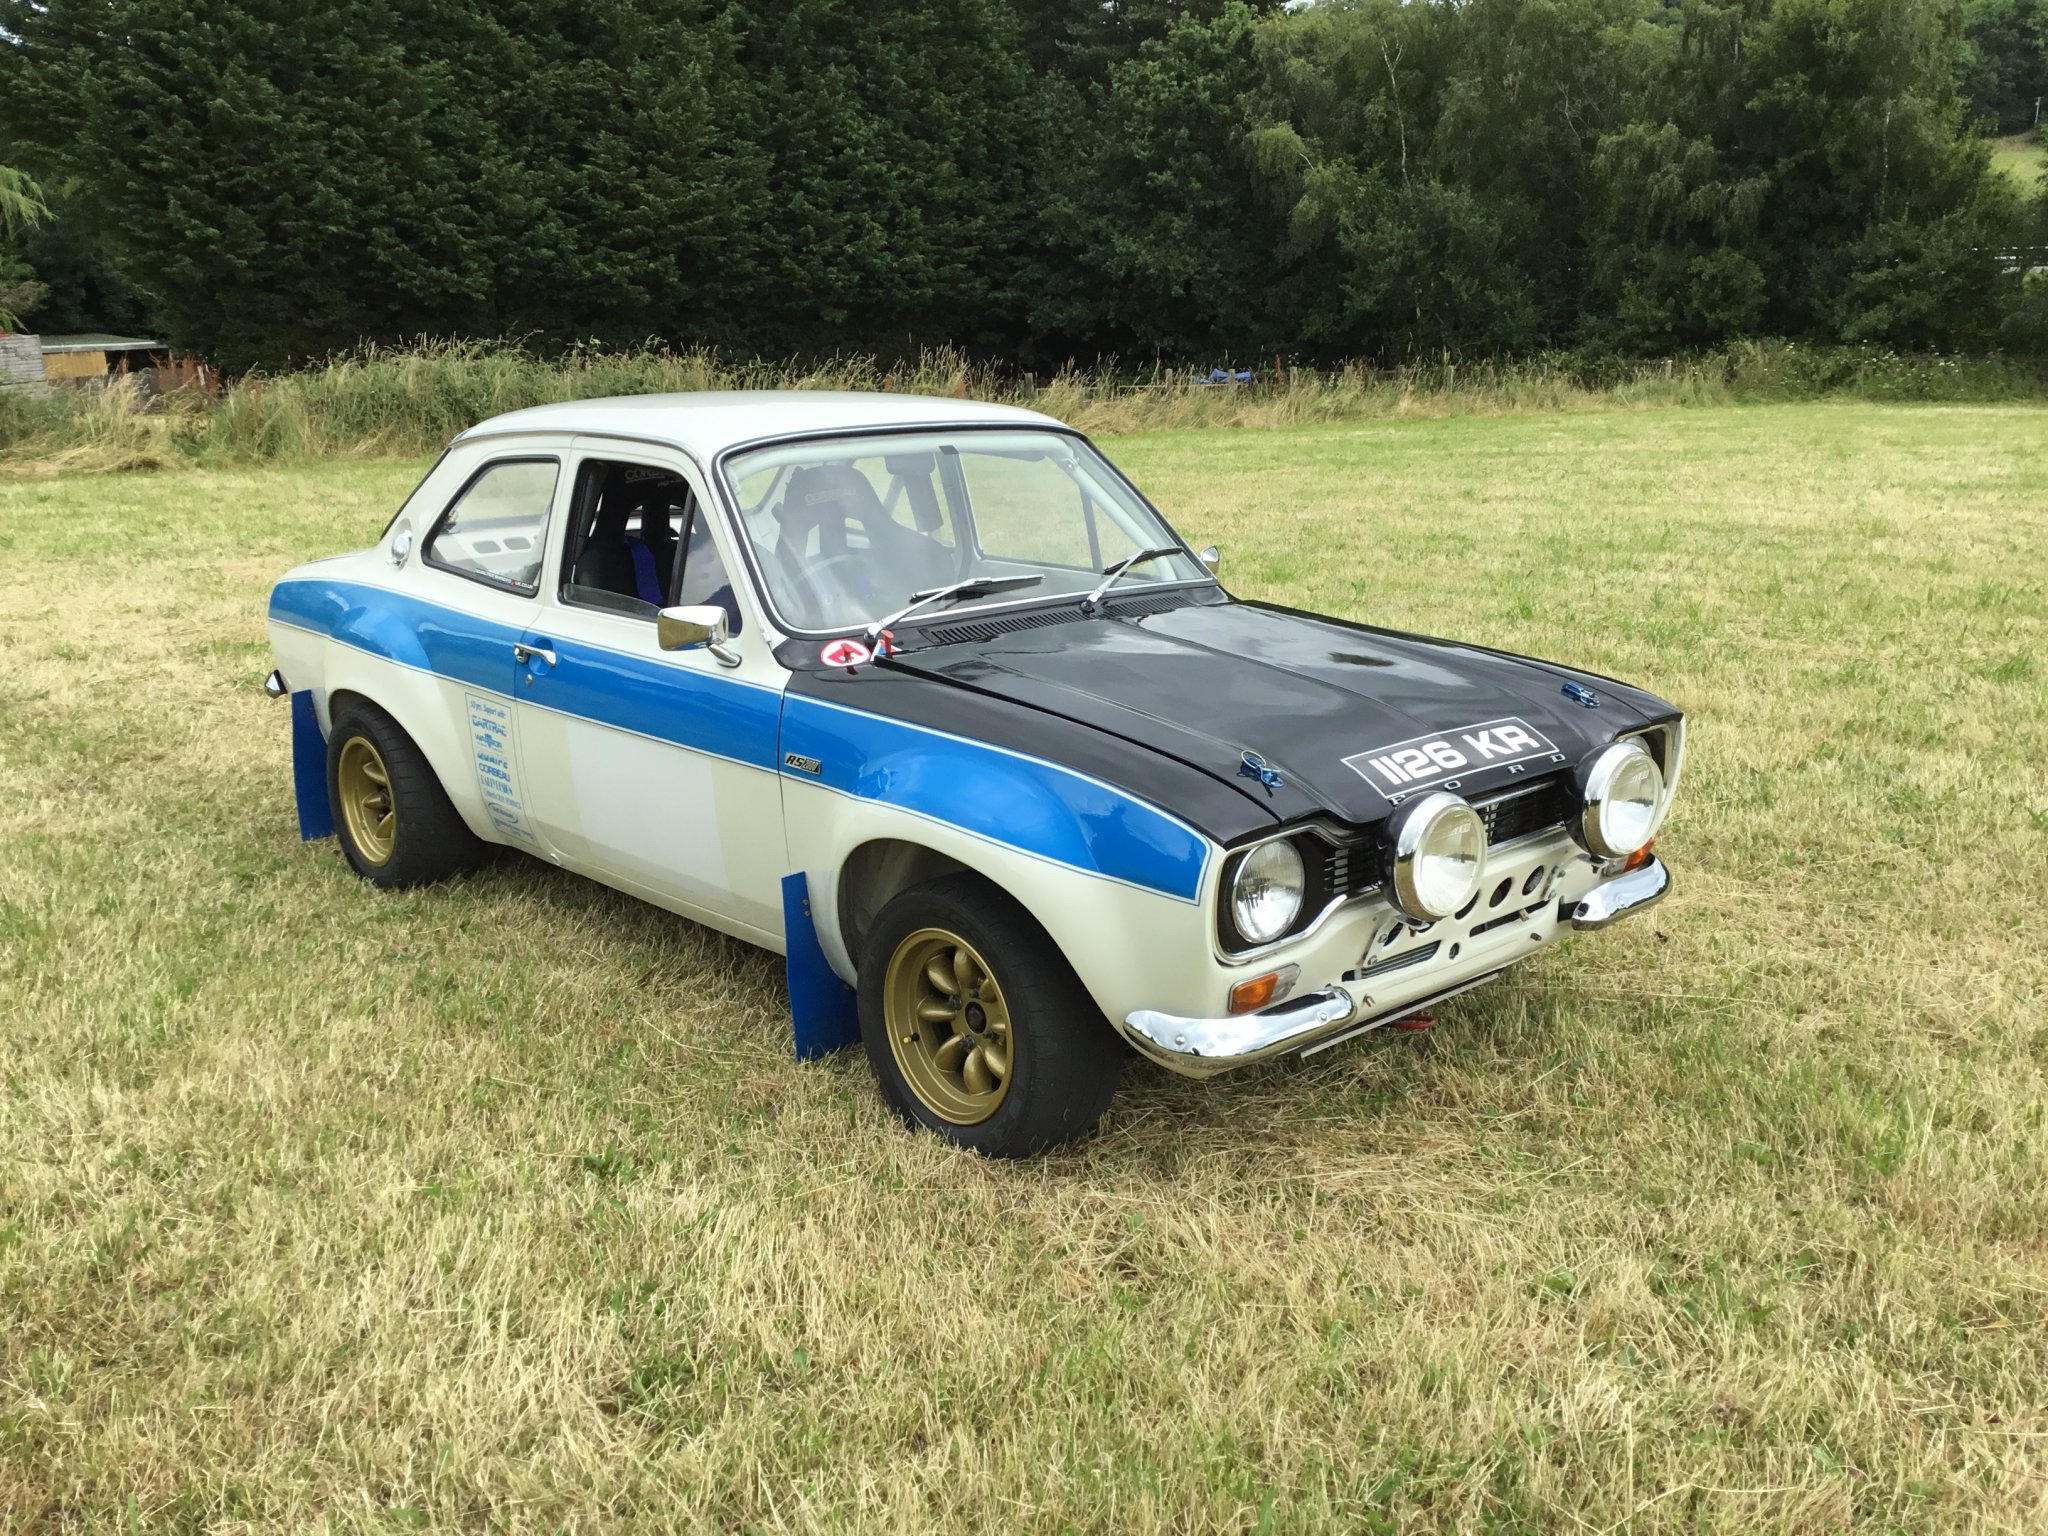 Ford escort mk1 historic rally car